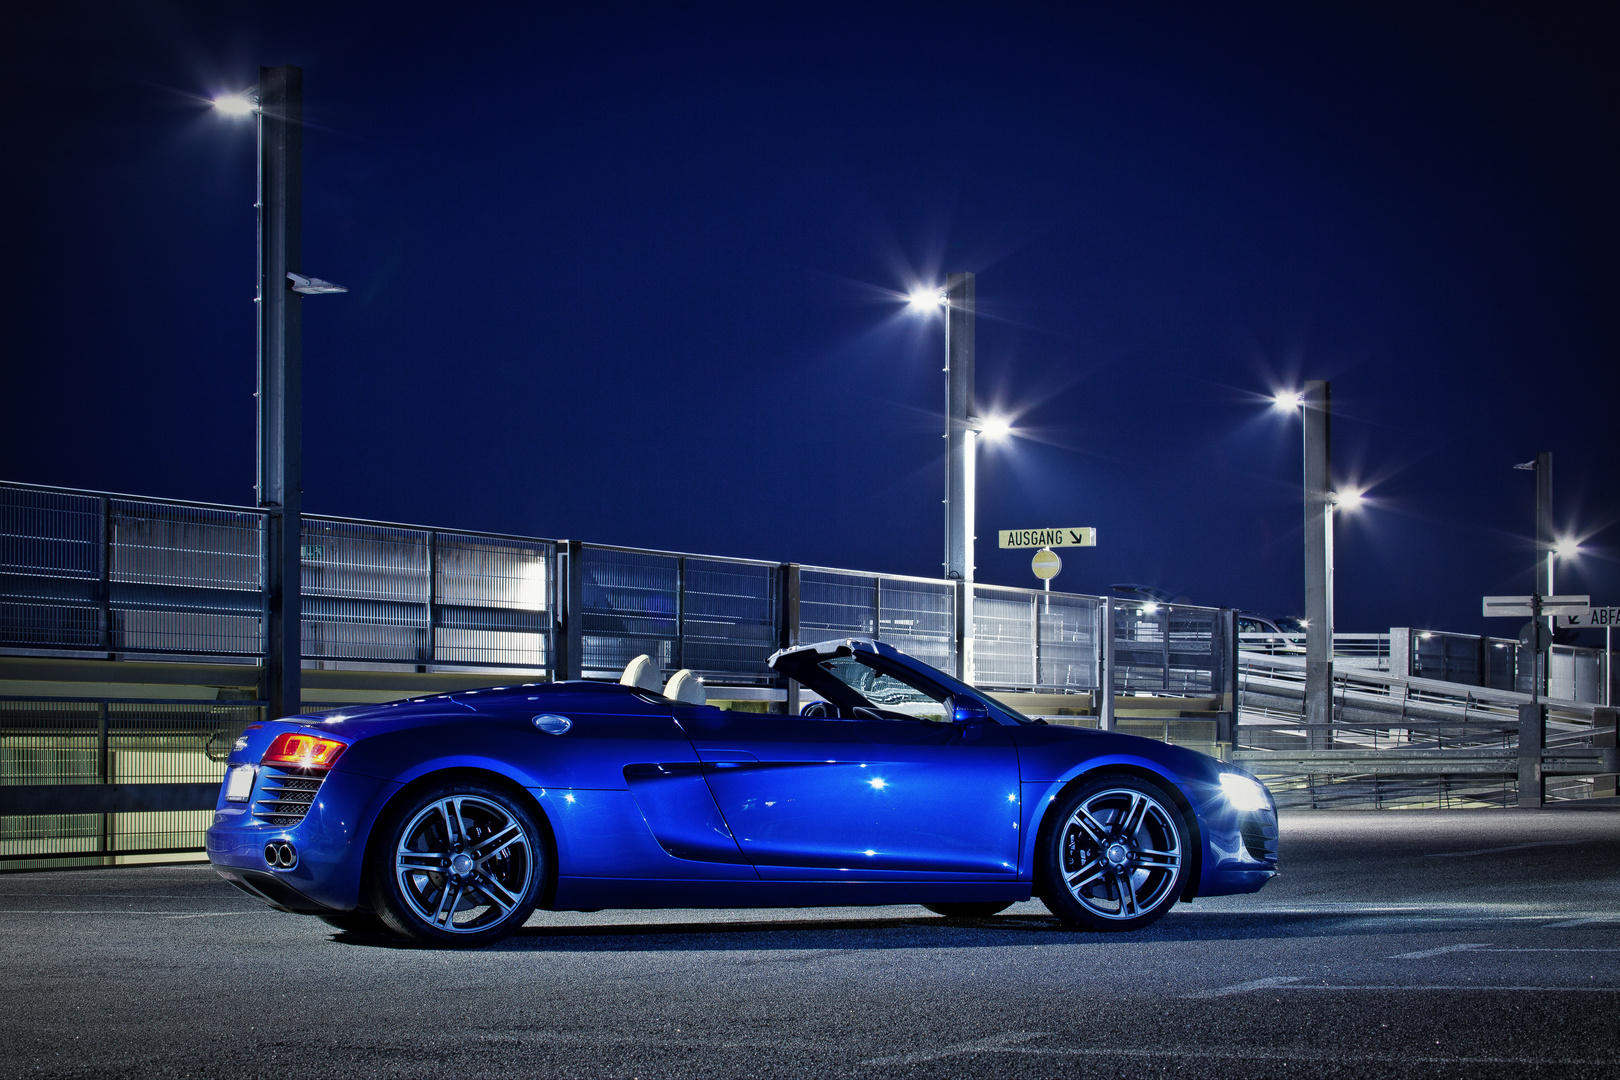 The blue Audi R8 Spyder under the open sky